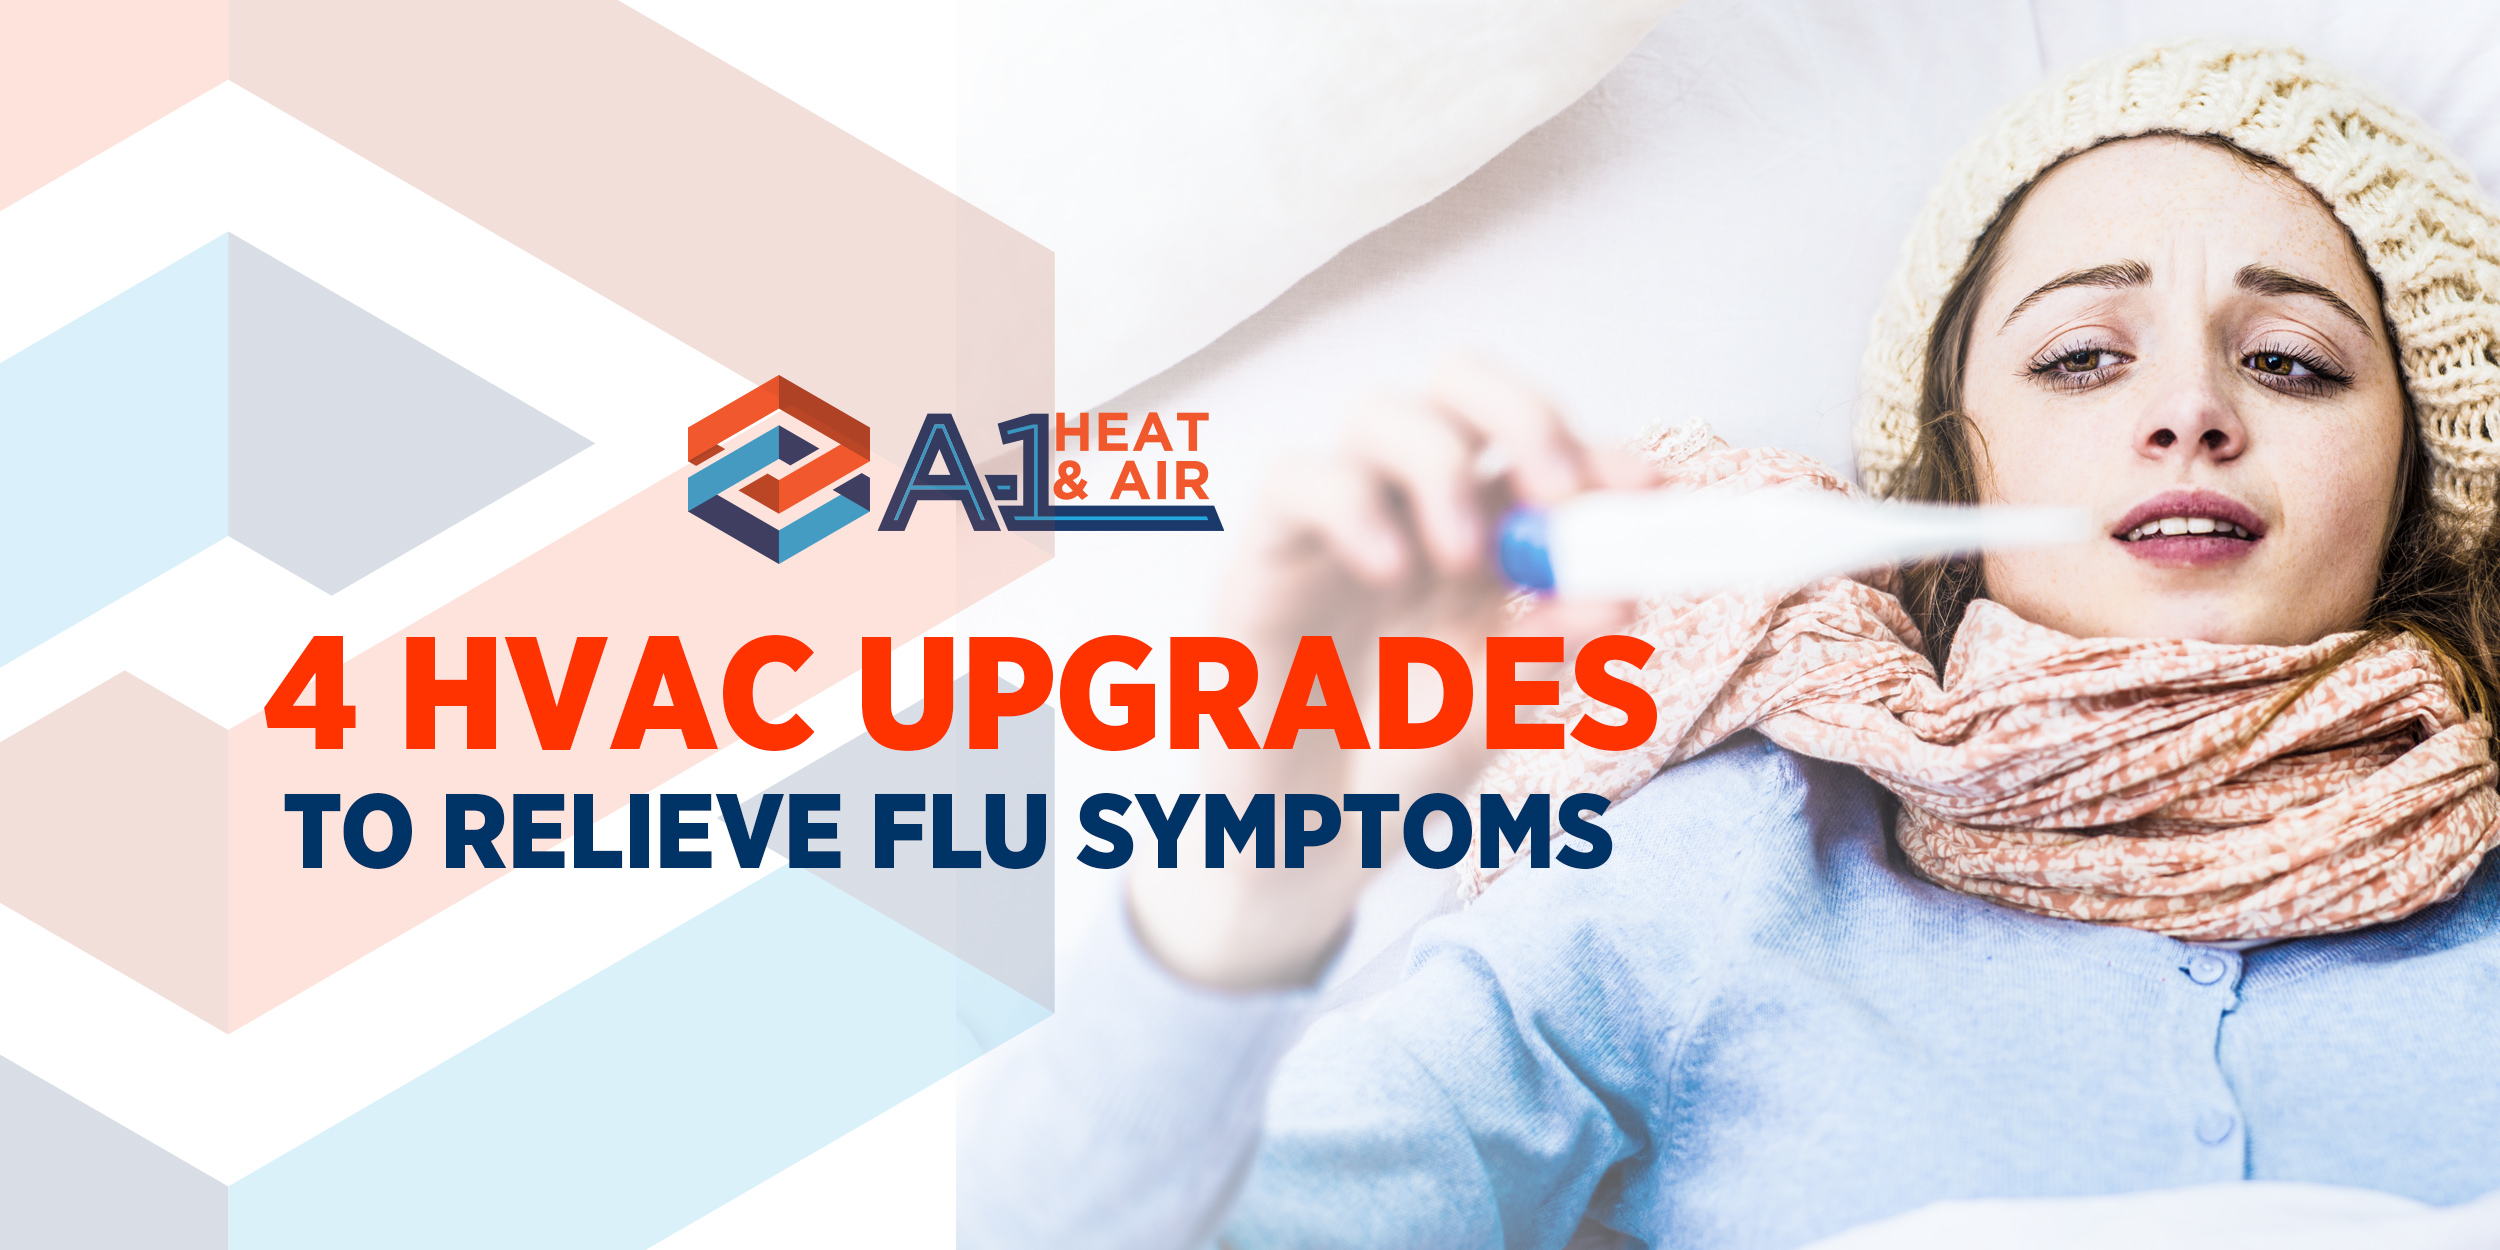 4 HVAC Upgrades to Relieve Flu Symptoms